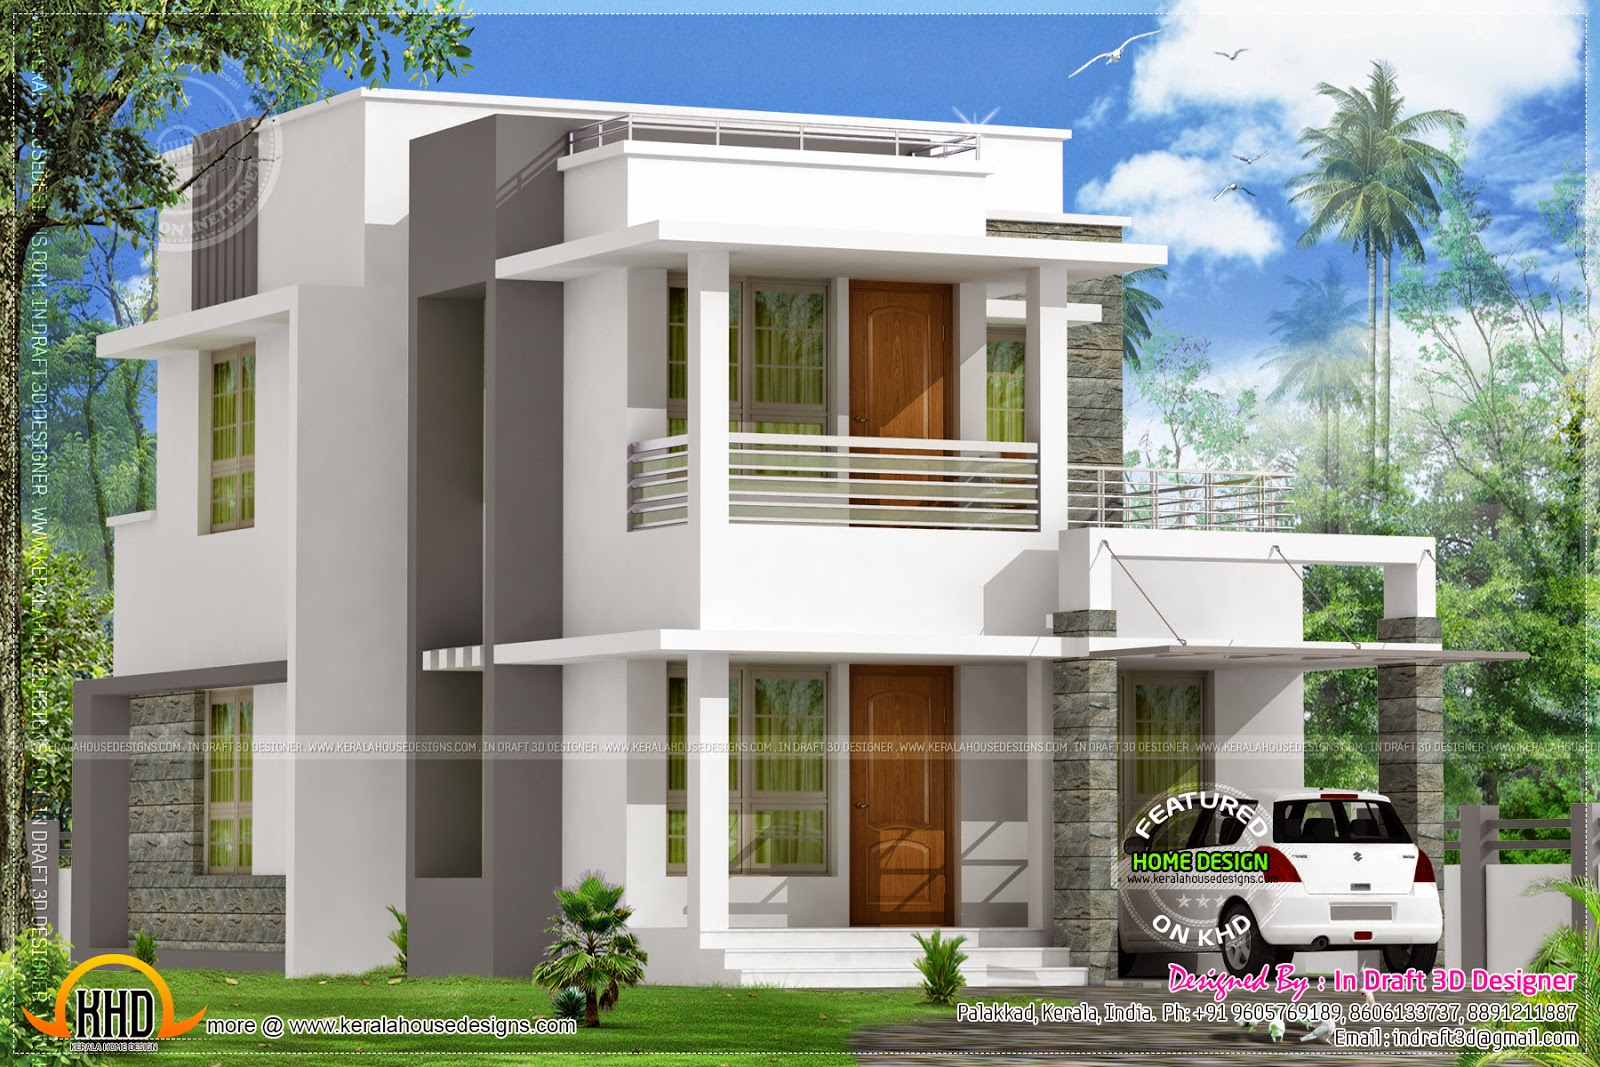 House Plans Sri Lanka June 2014 Kerala Home Design And Floor Plans